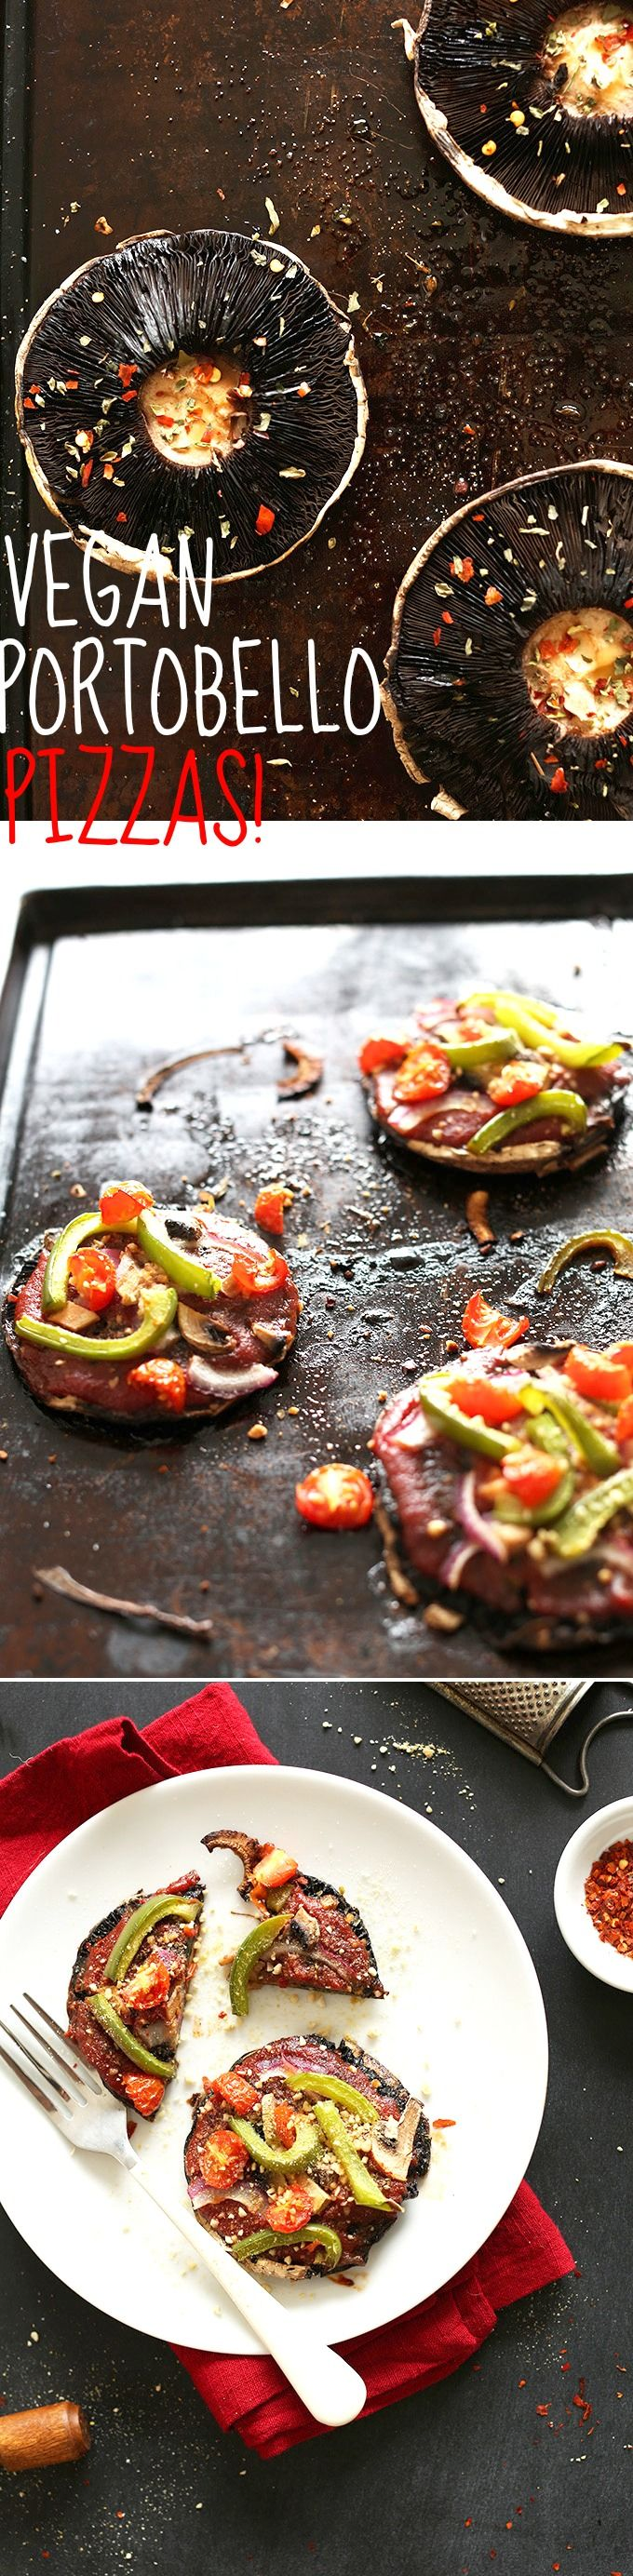 30-Minute Vegan GF Portobello Pizzas! A healthy dinner idea, customizable with toppings and entirely plant-based! #vegan #glutenfree #healthy